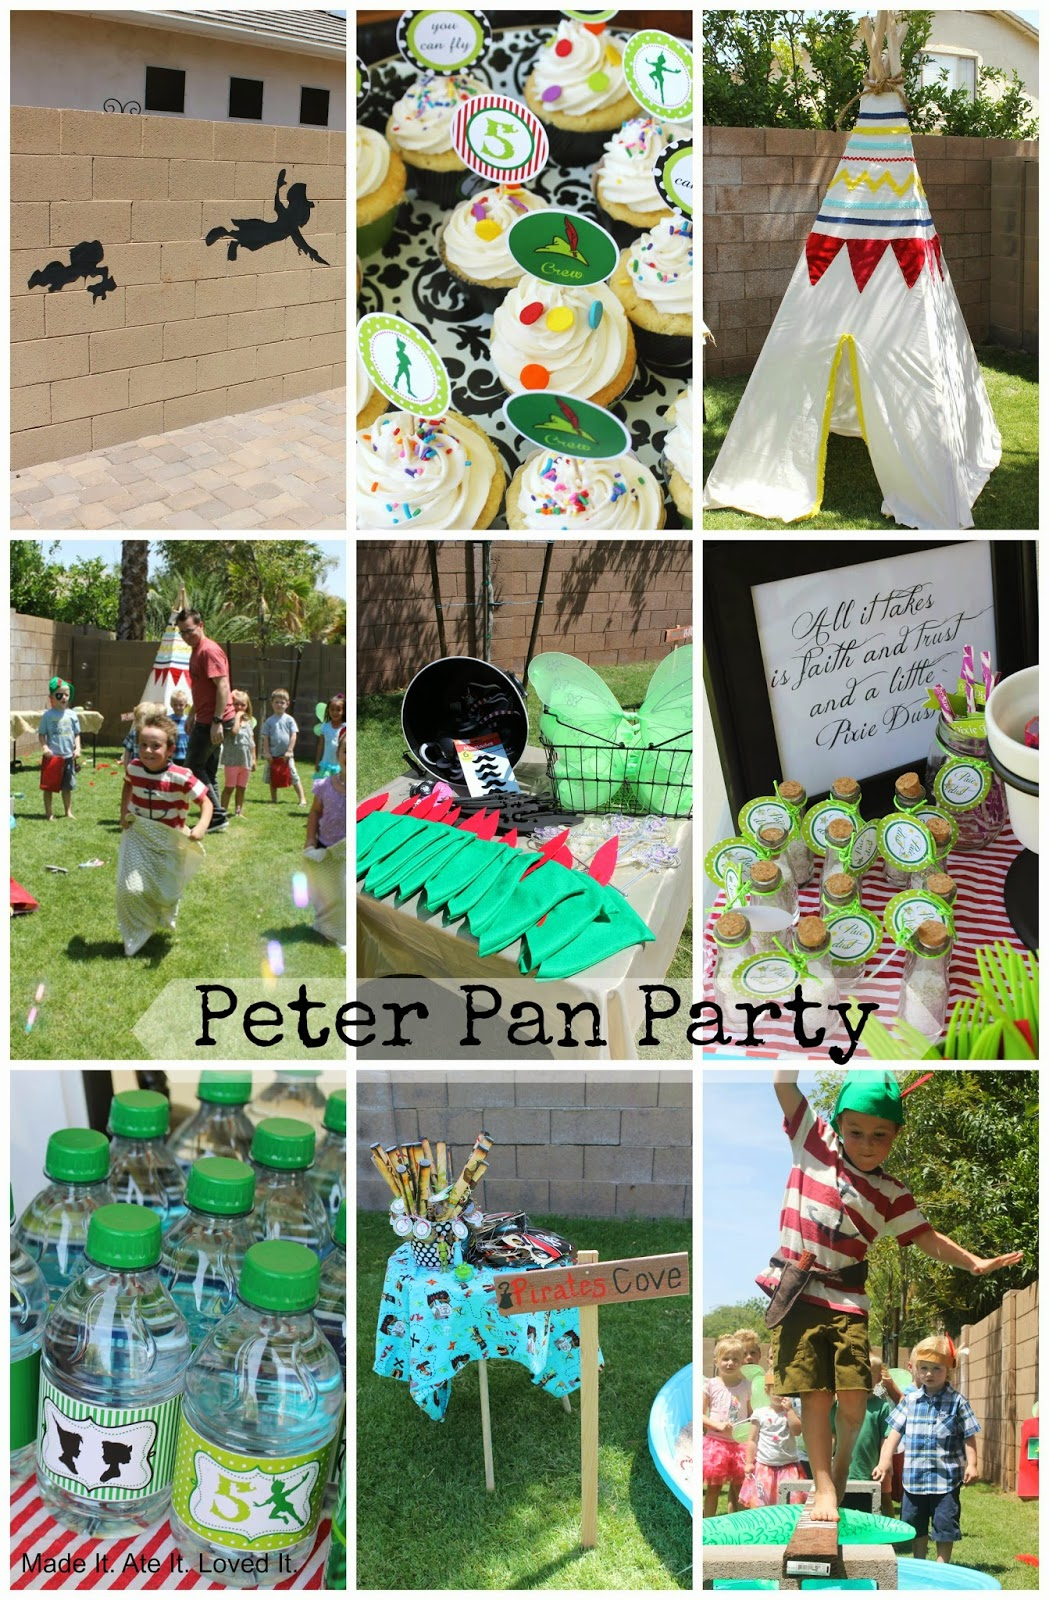 A Spectacular Peter Pan Party Made It Ate It Loved It